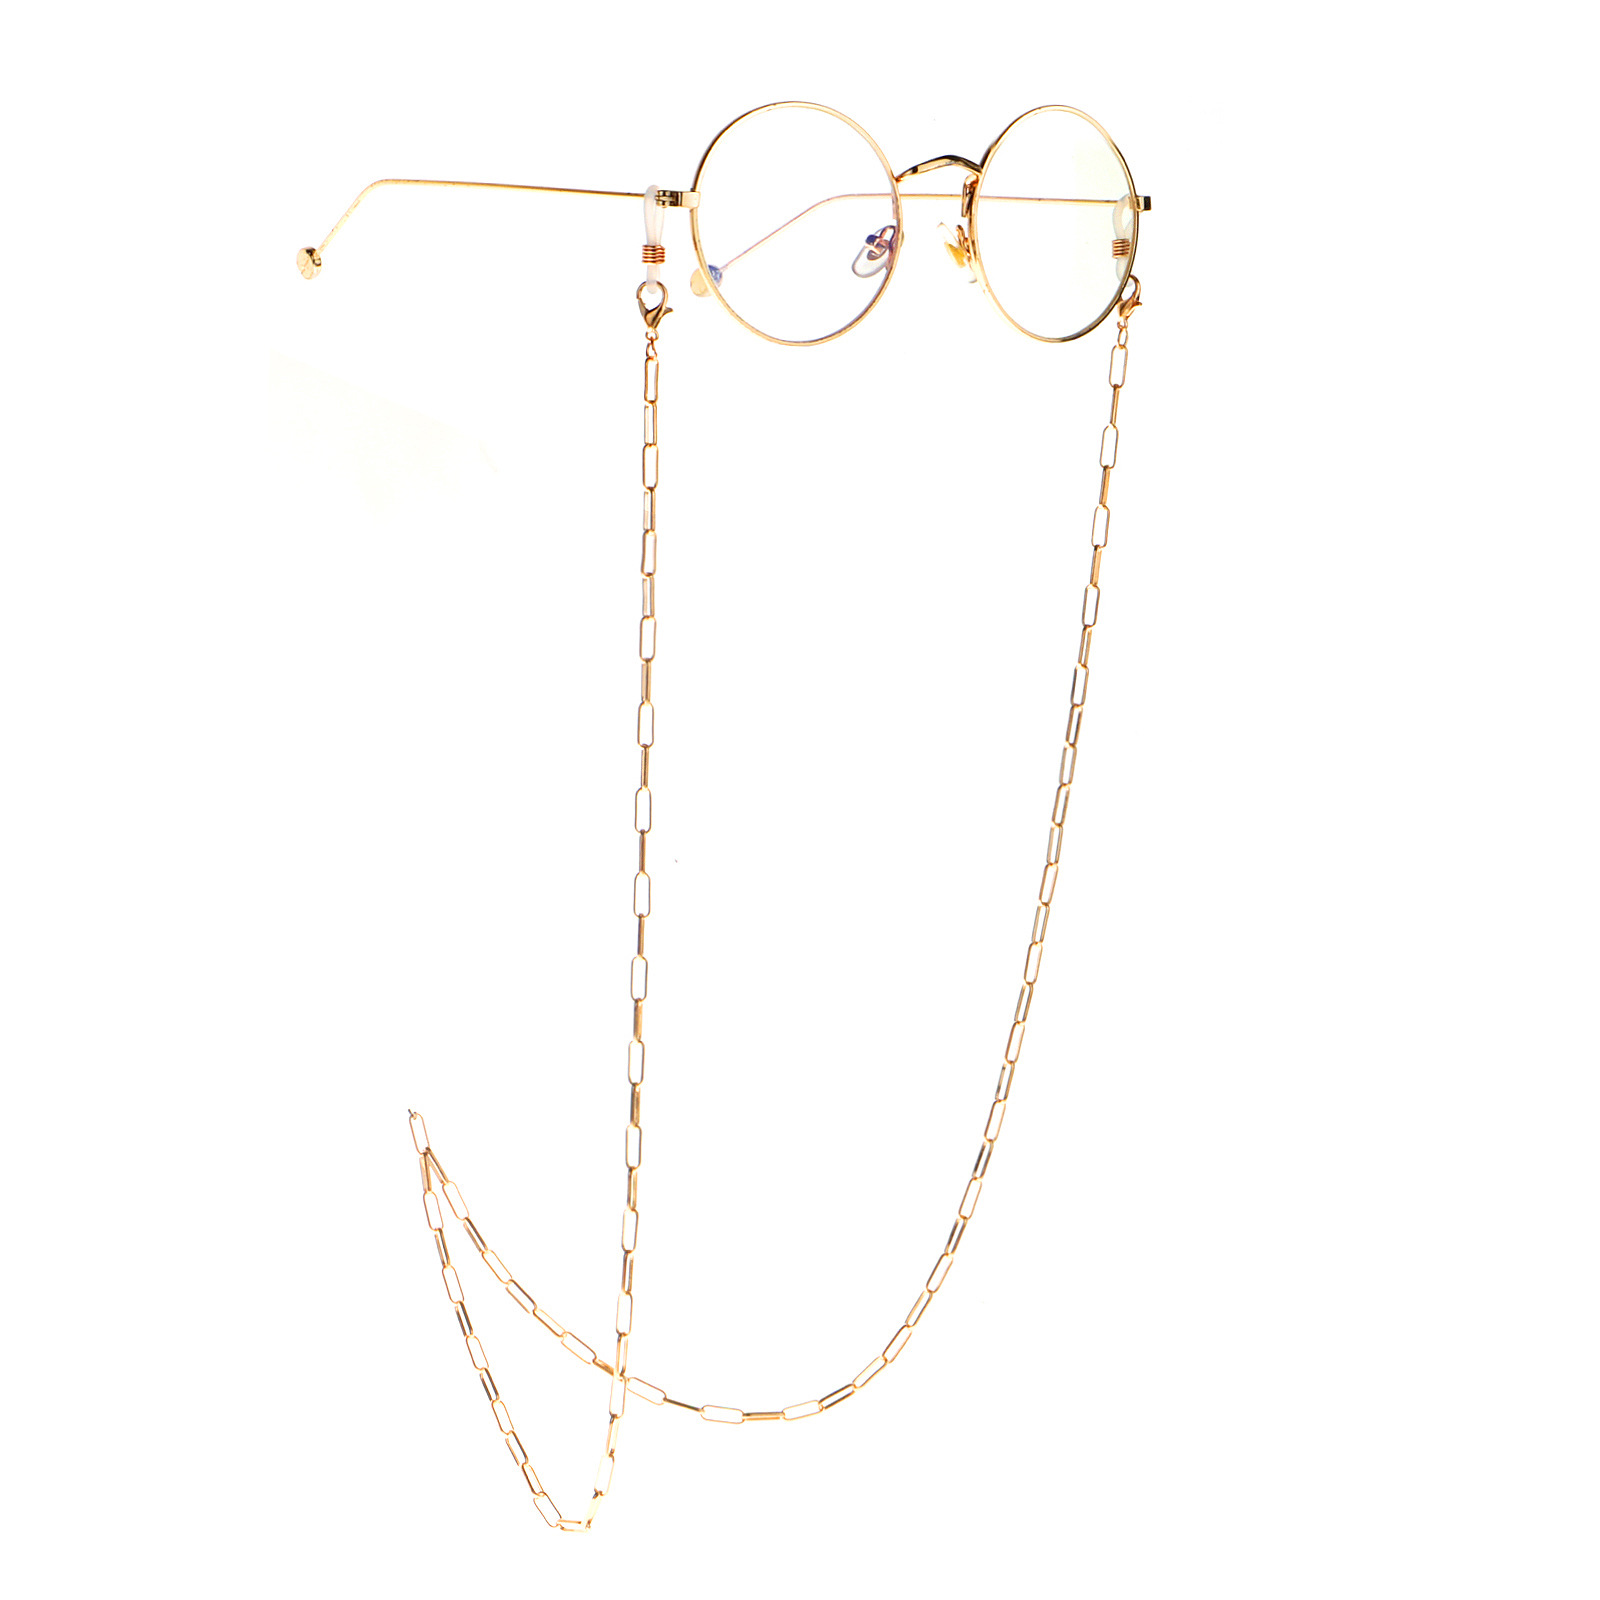 2020 Hot Sale Fashion Minimalist Gold Color Anti-Fade Golden sunglasses chain Rope Metal Punk Hip Hop lanyards glasses holder